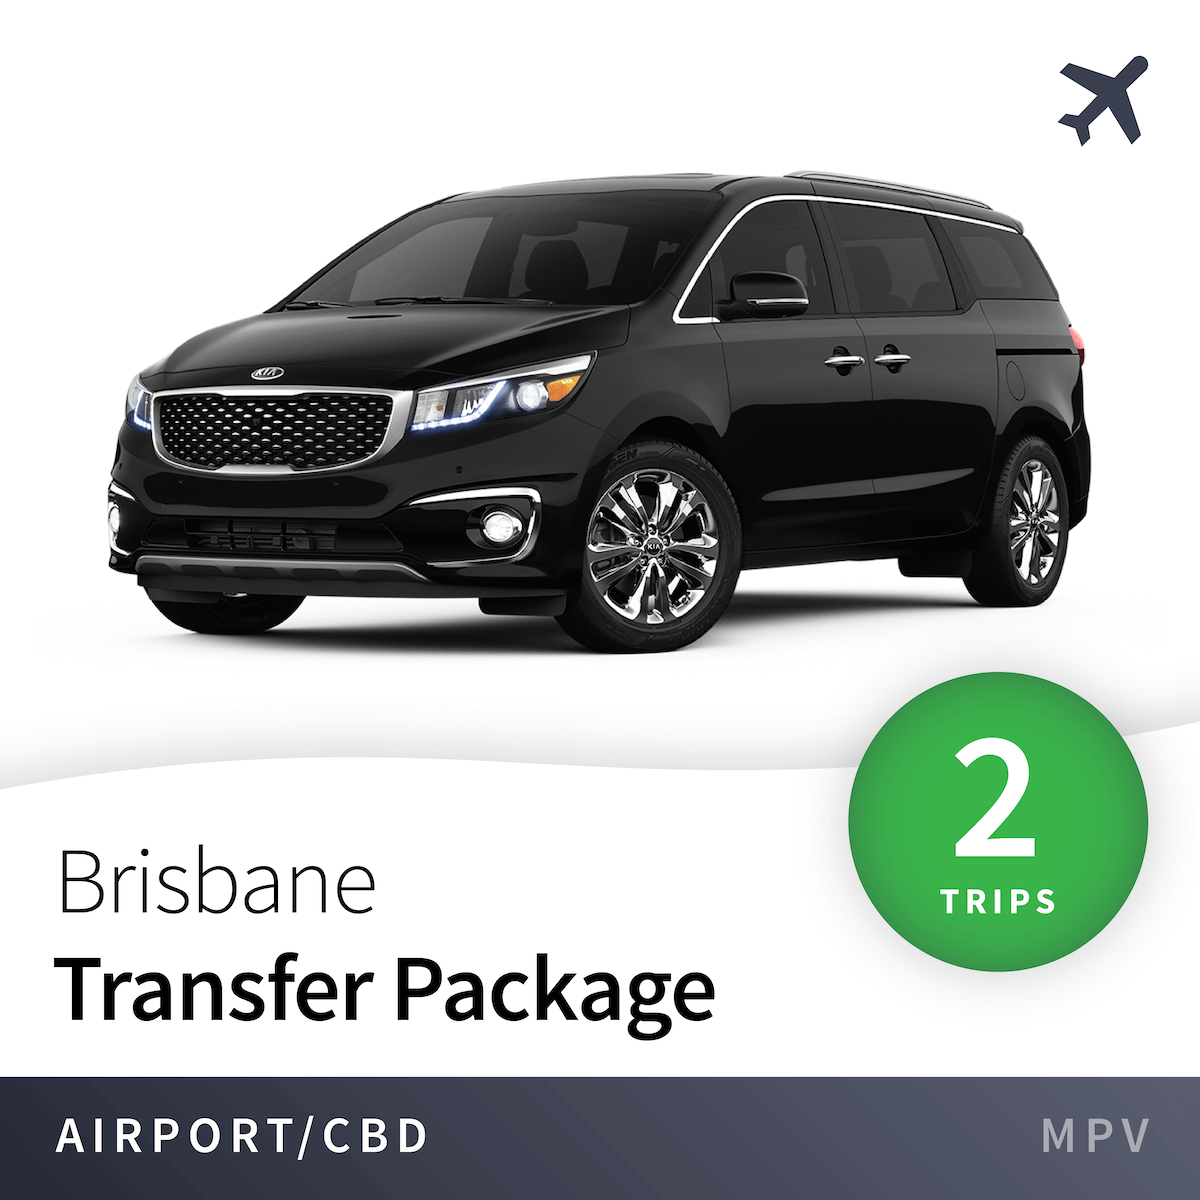 Brisbane Airport Transfer Package - MPV (2 Trips) 10